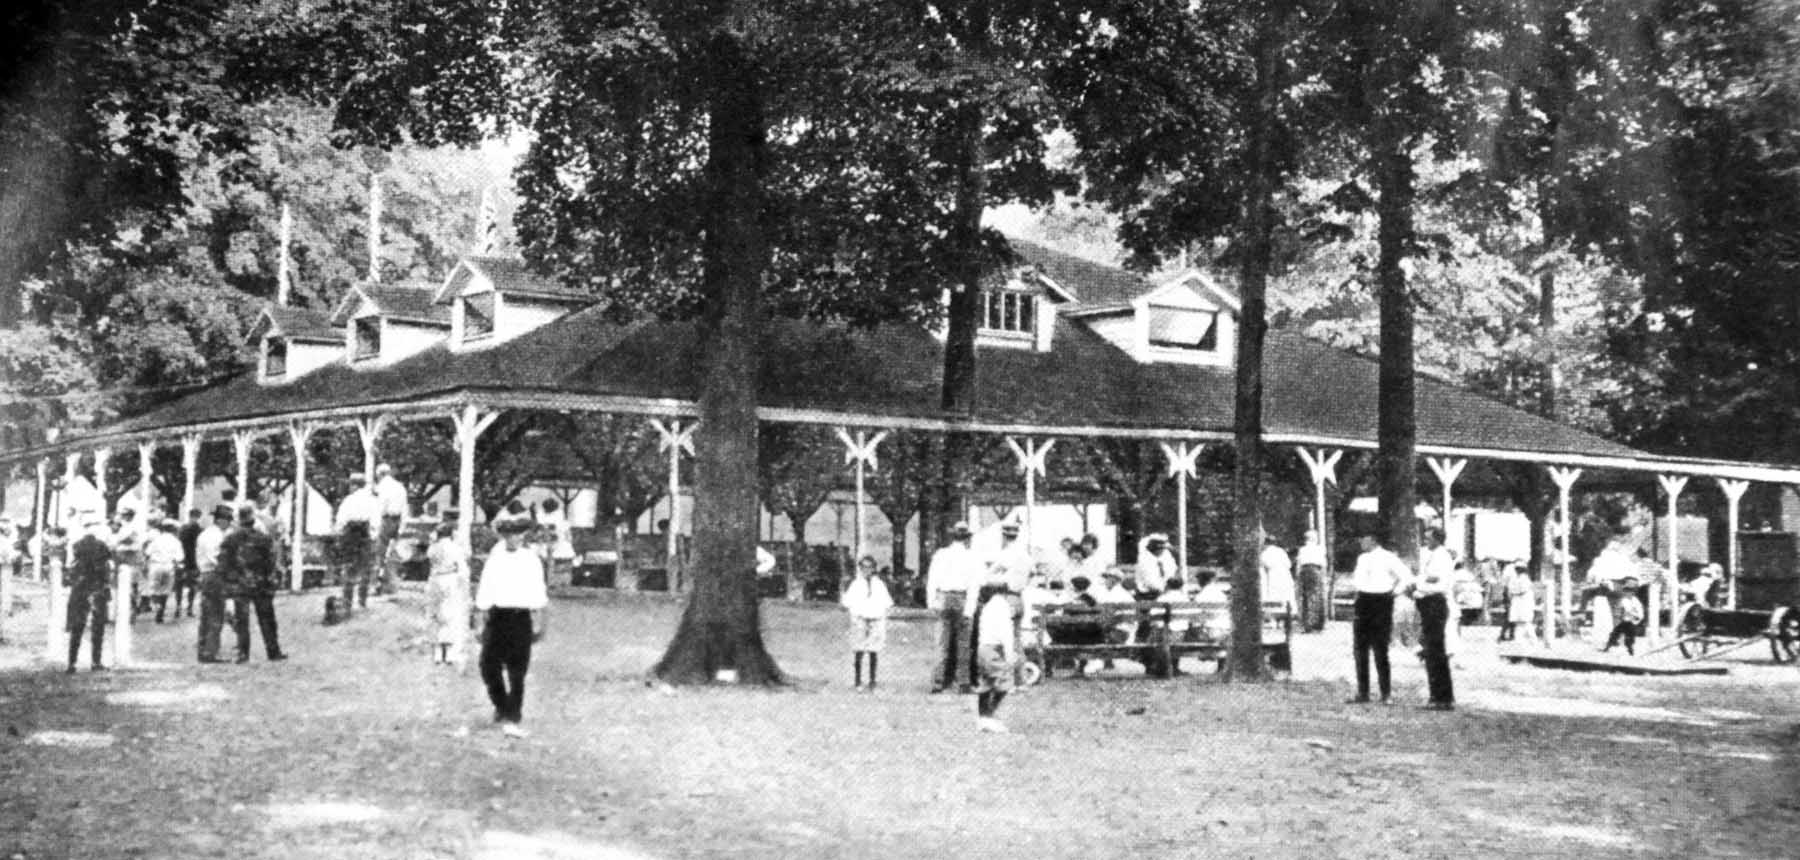 Early Photo of Pavilion